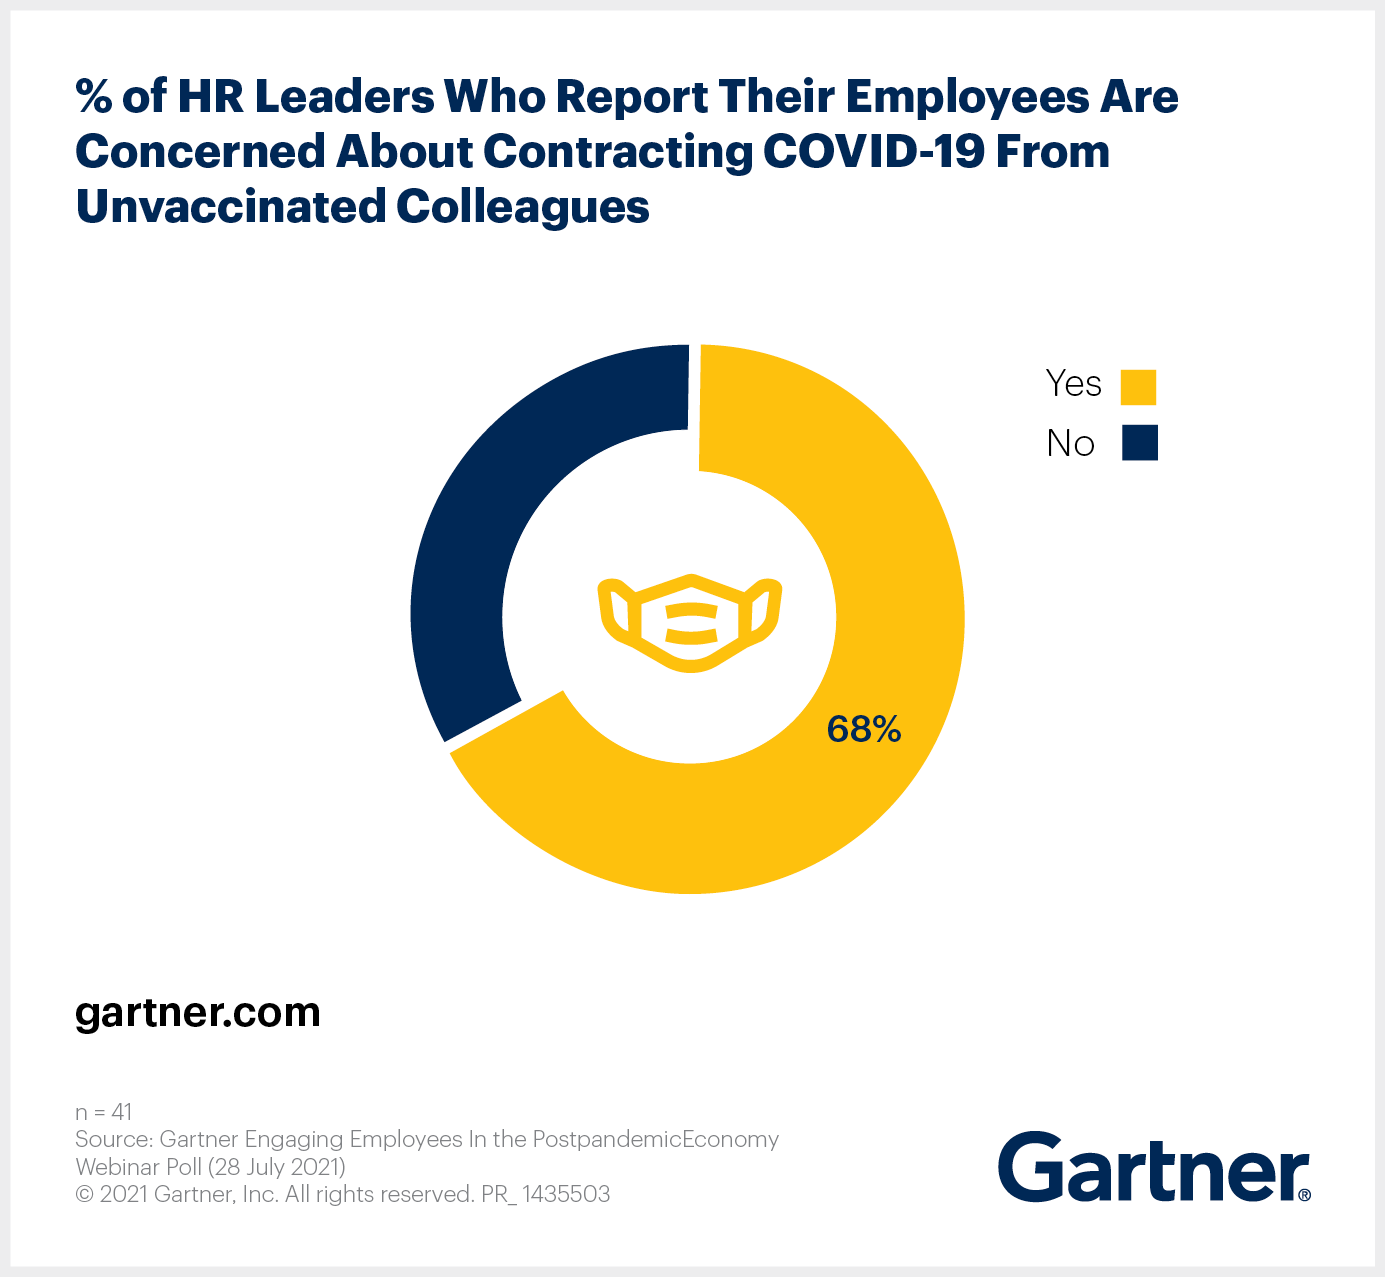 Percentage of HR leaders who report their employees are concerned about contracted COVID from unvaccinated colleagues